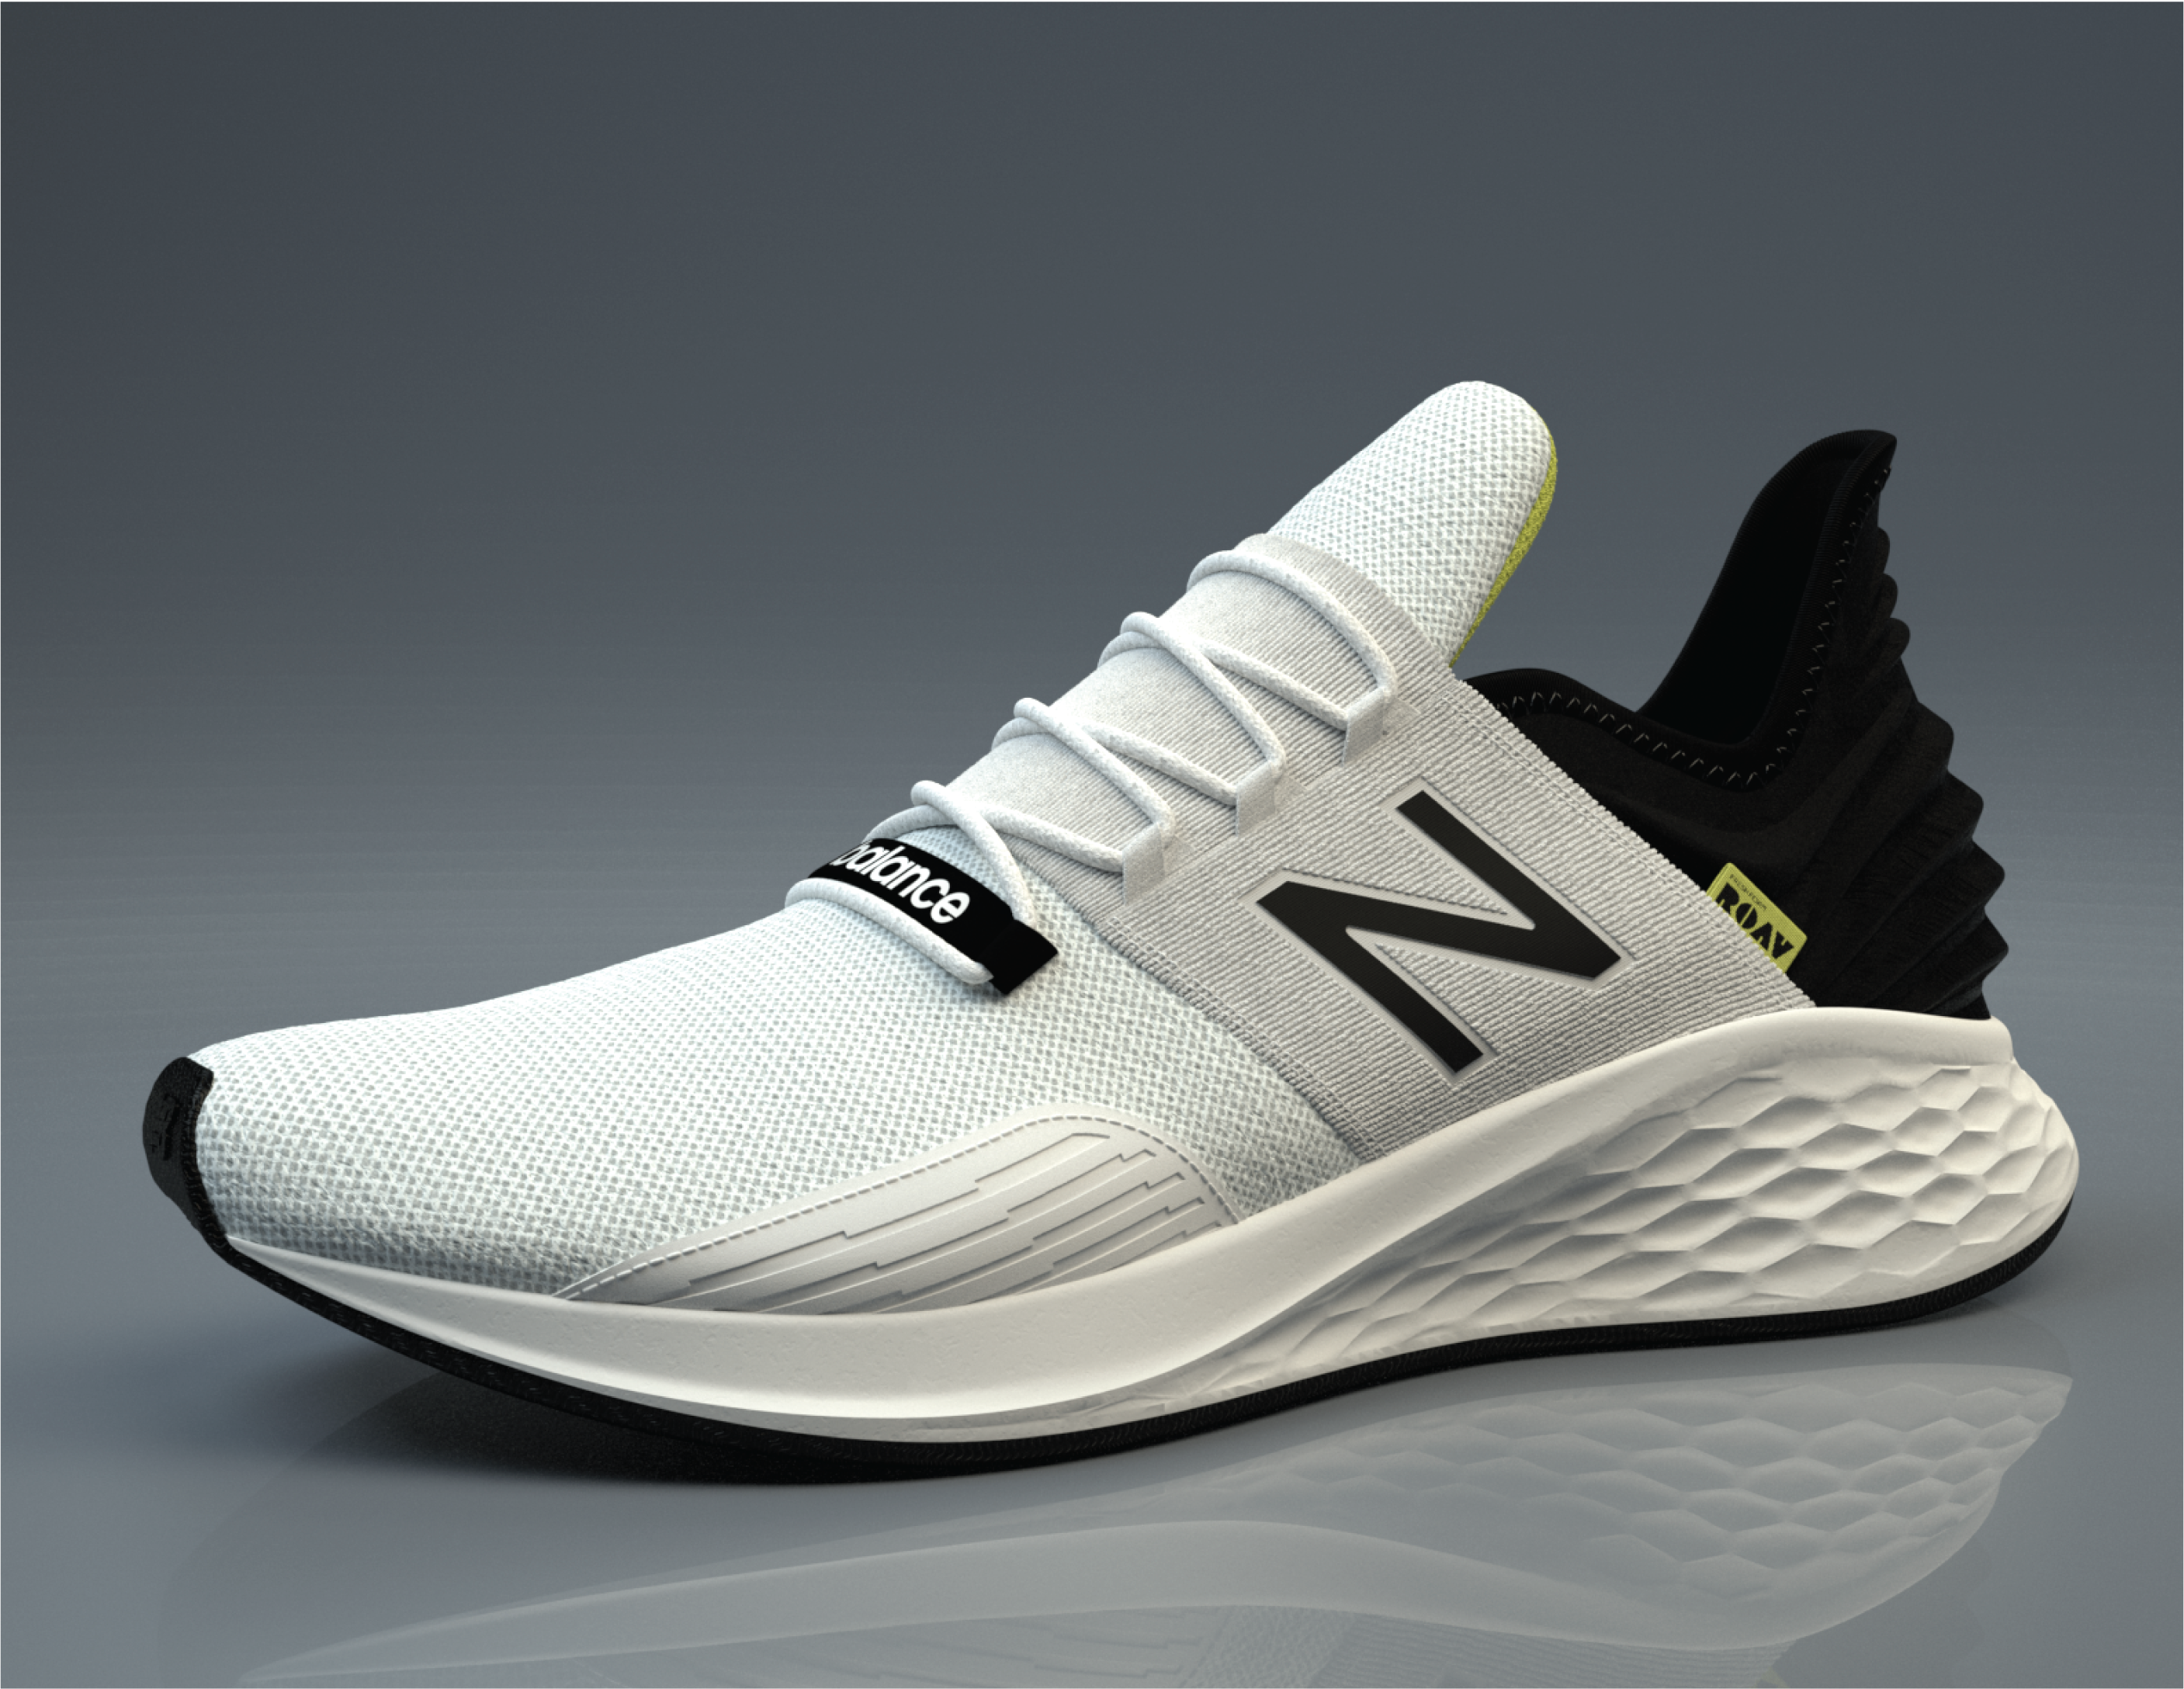 Rendering of New Balance sneaker with Foundry software